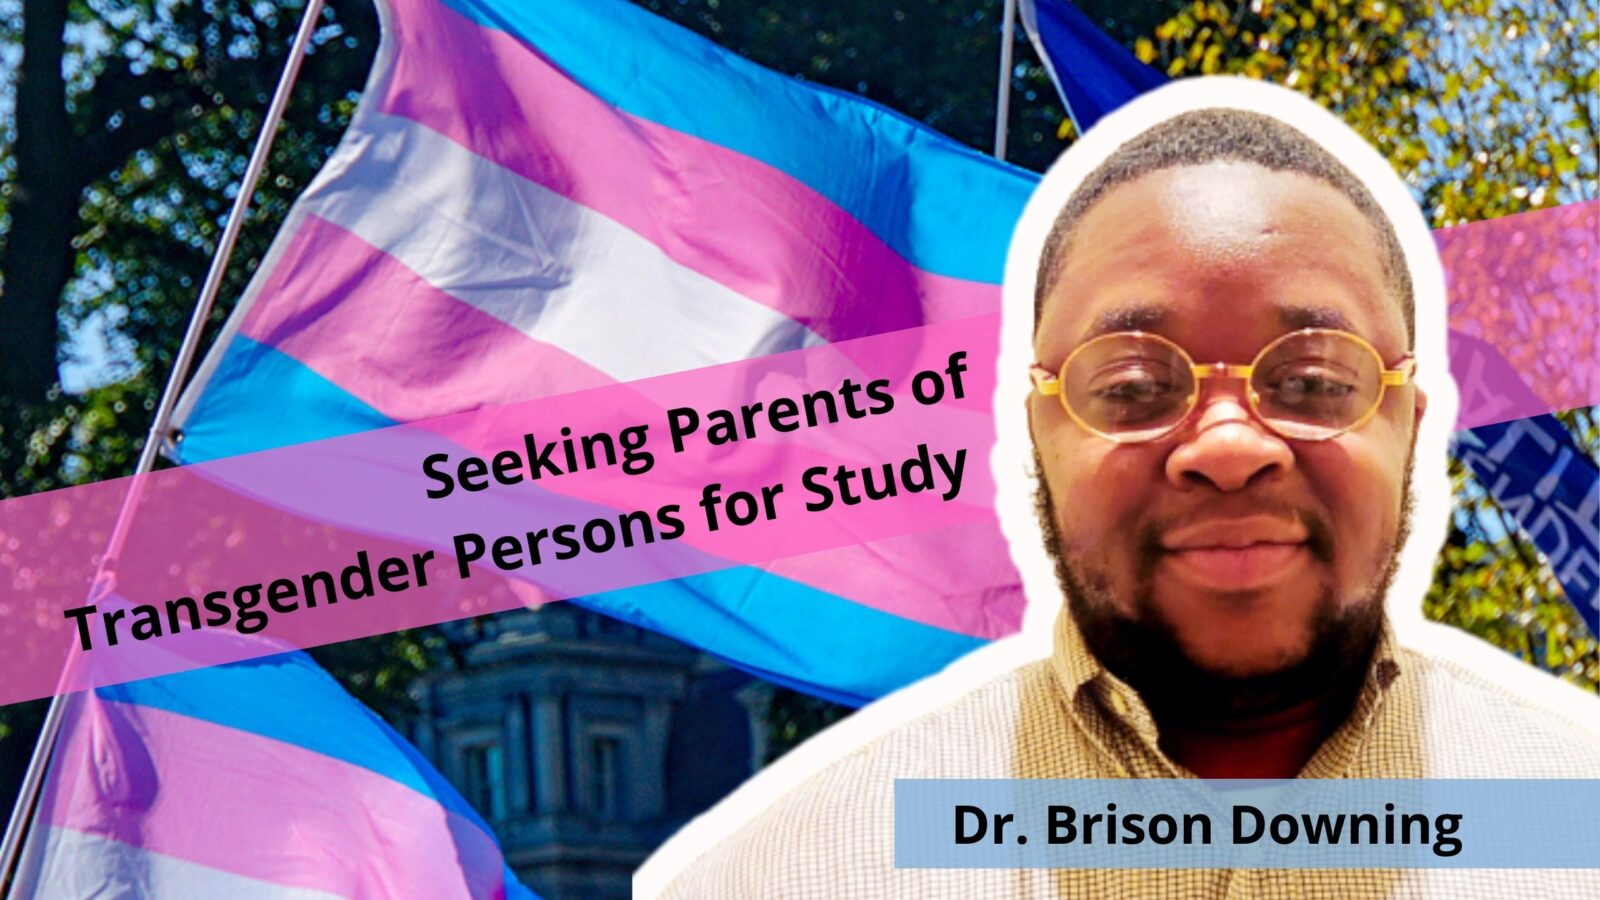 Brison Scholar Lee Downing Transgender Parents Disertation lgbt out gay entrepreneur lgbtq business owners lesbian queer online community OutBuro